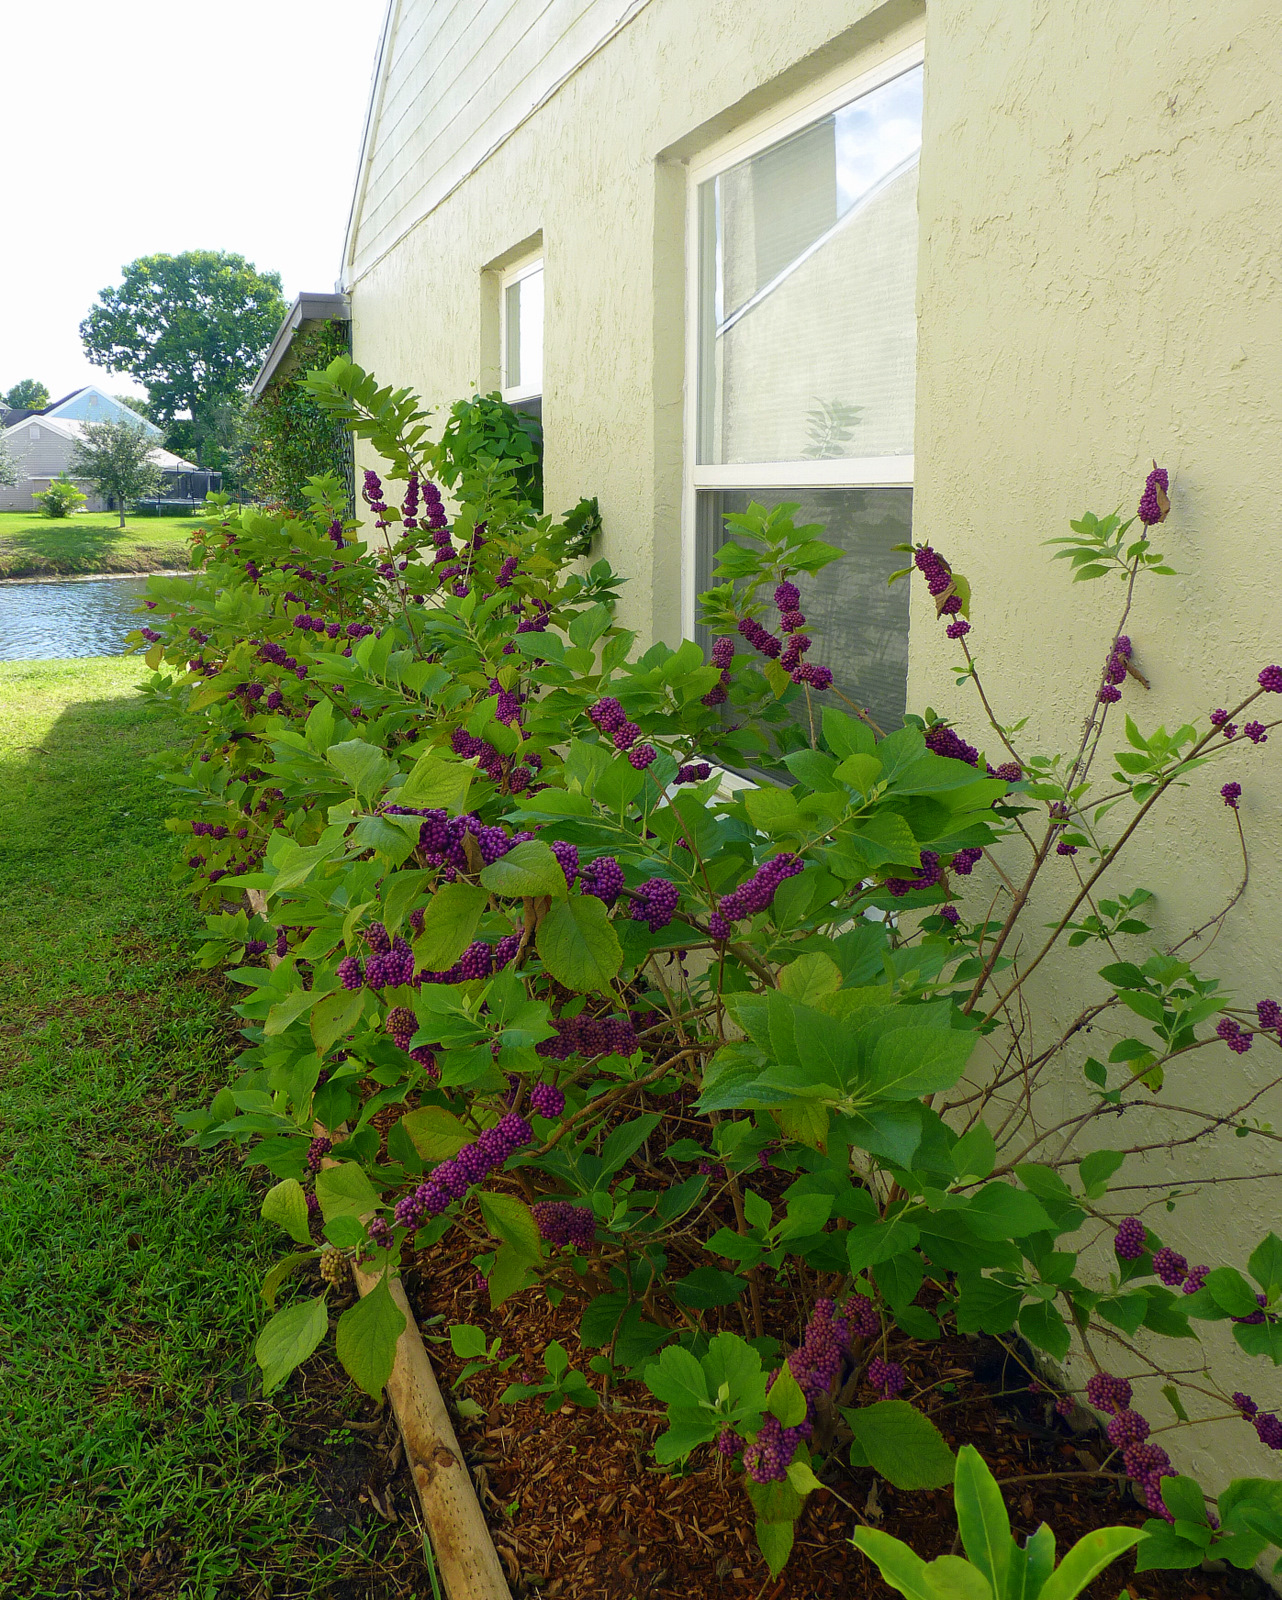 This Is A Por Bush With Native Plant Gardeners Because It S Very Easy To Grow And Nearly Any Nursery Carries